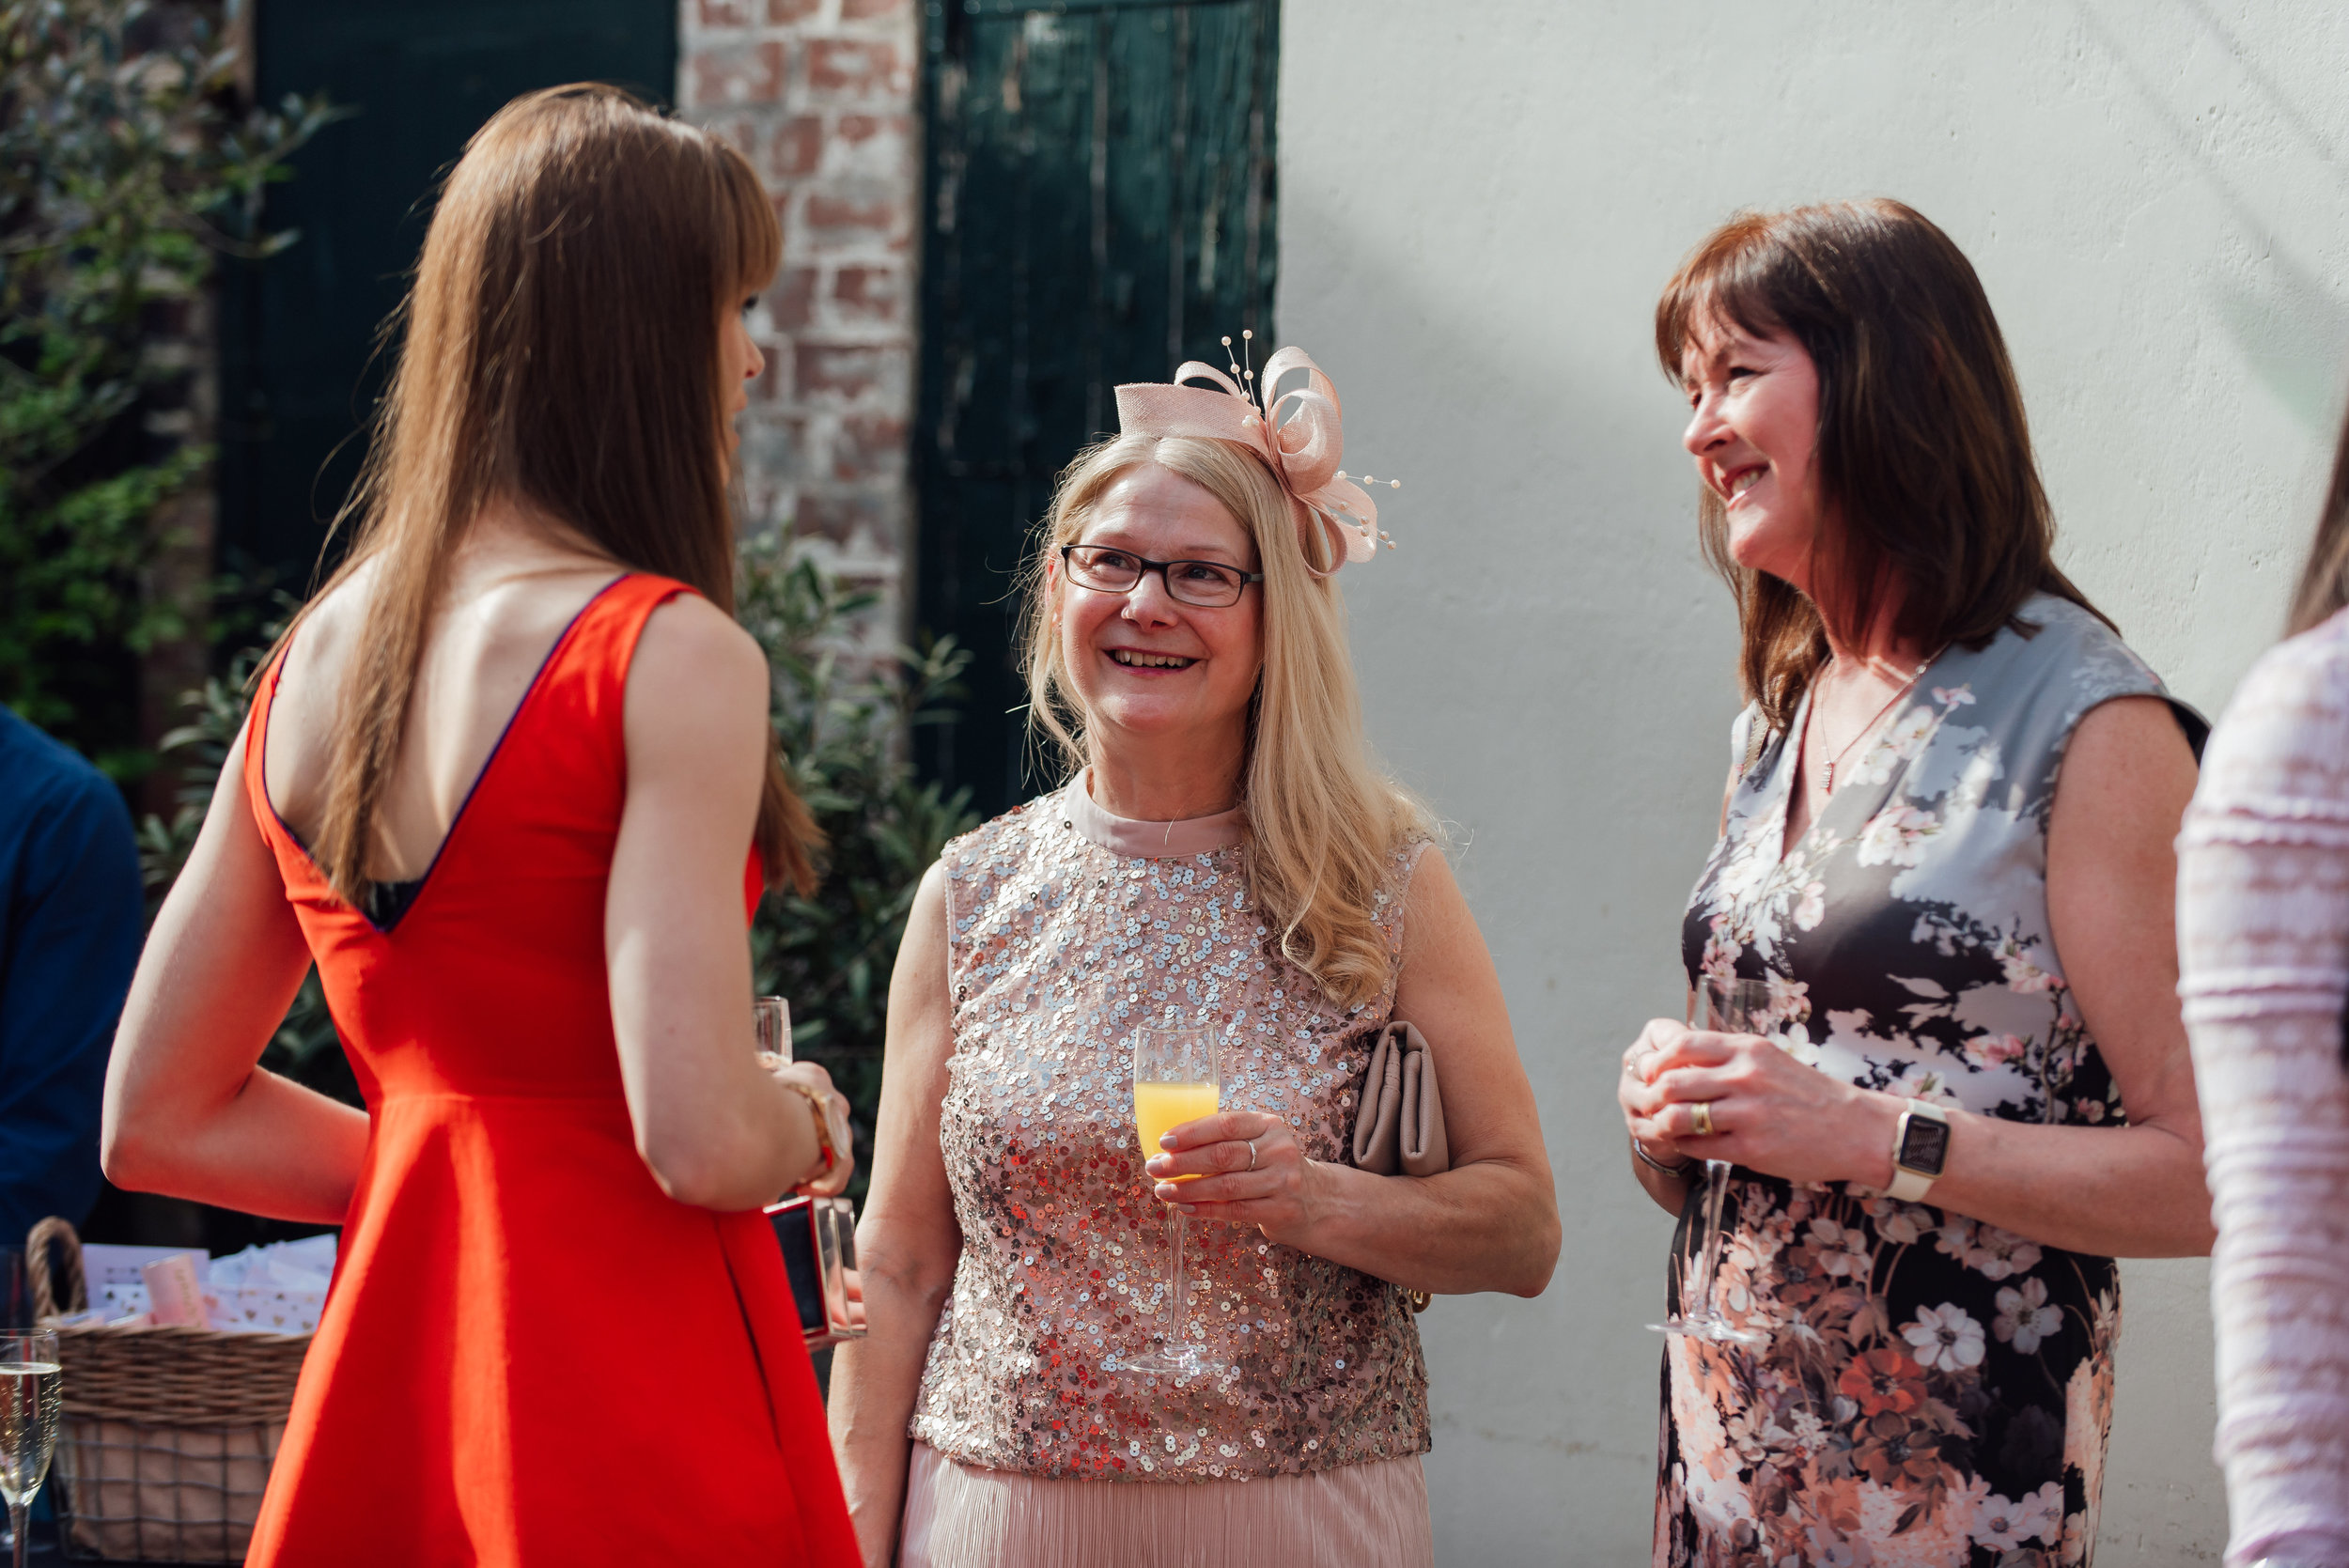 the verge in rye wedding by Amy James photography - Hampshire wedding photographer - Surrey wedding photographer - Berkshire wedding photographer - documentary wedding photographer